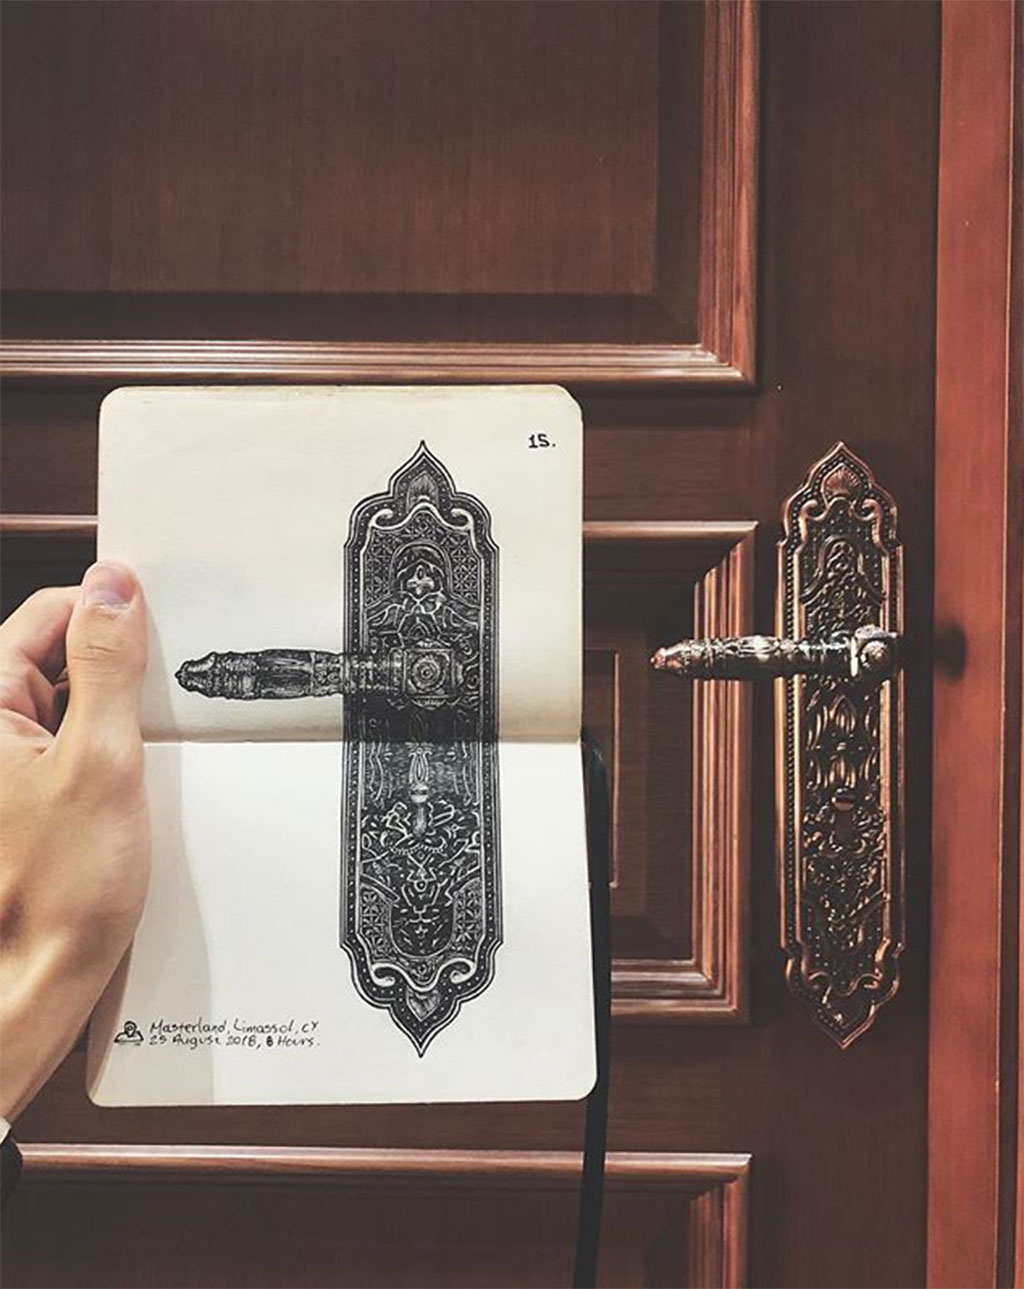 Detailed drawing of an elaborate door handle, side by side with the real door handle